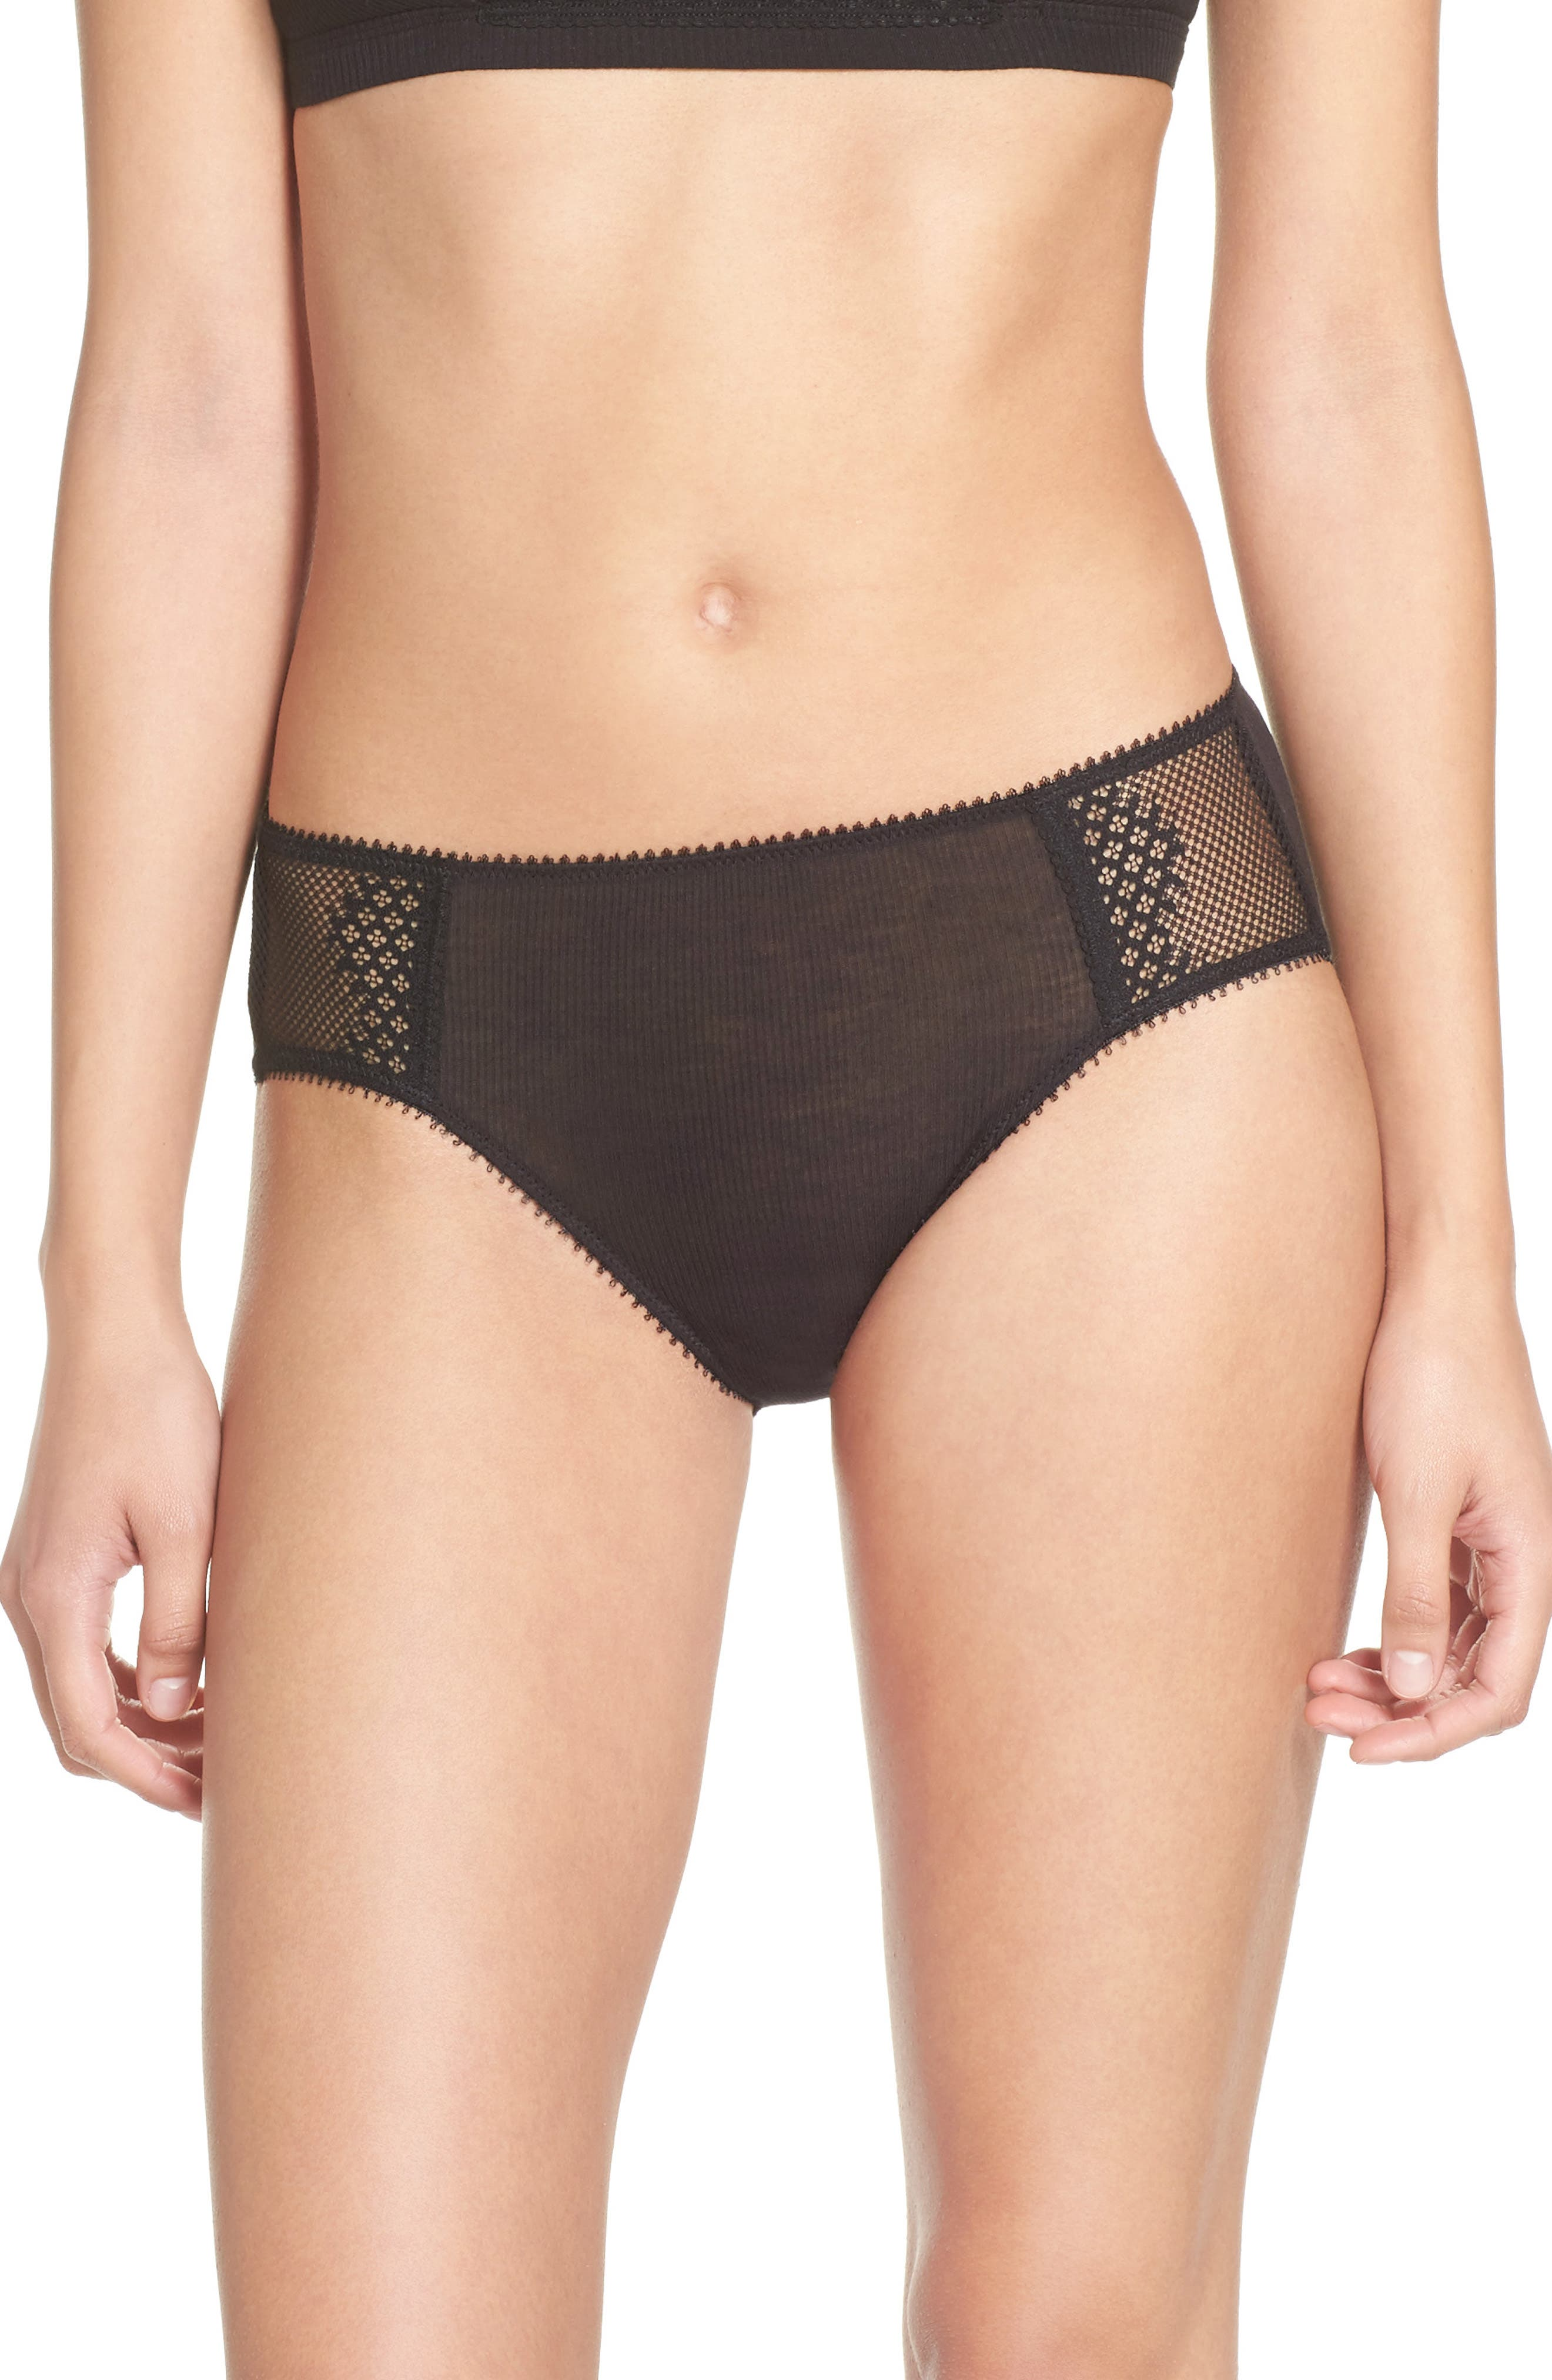 Low Rise Hipster Panties,                         Main,                         color, 001